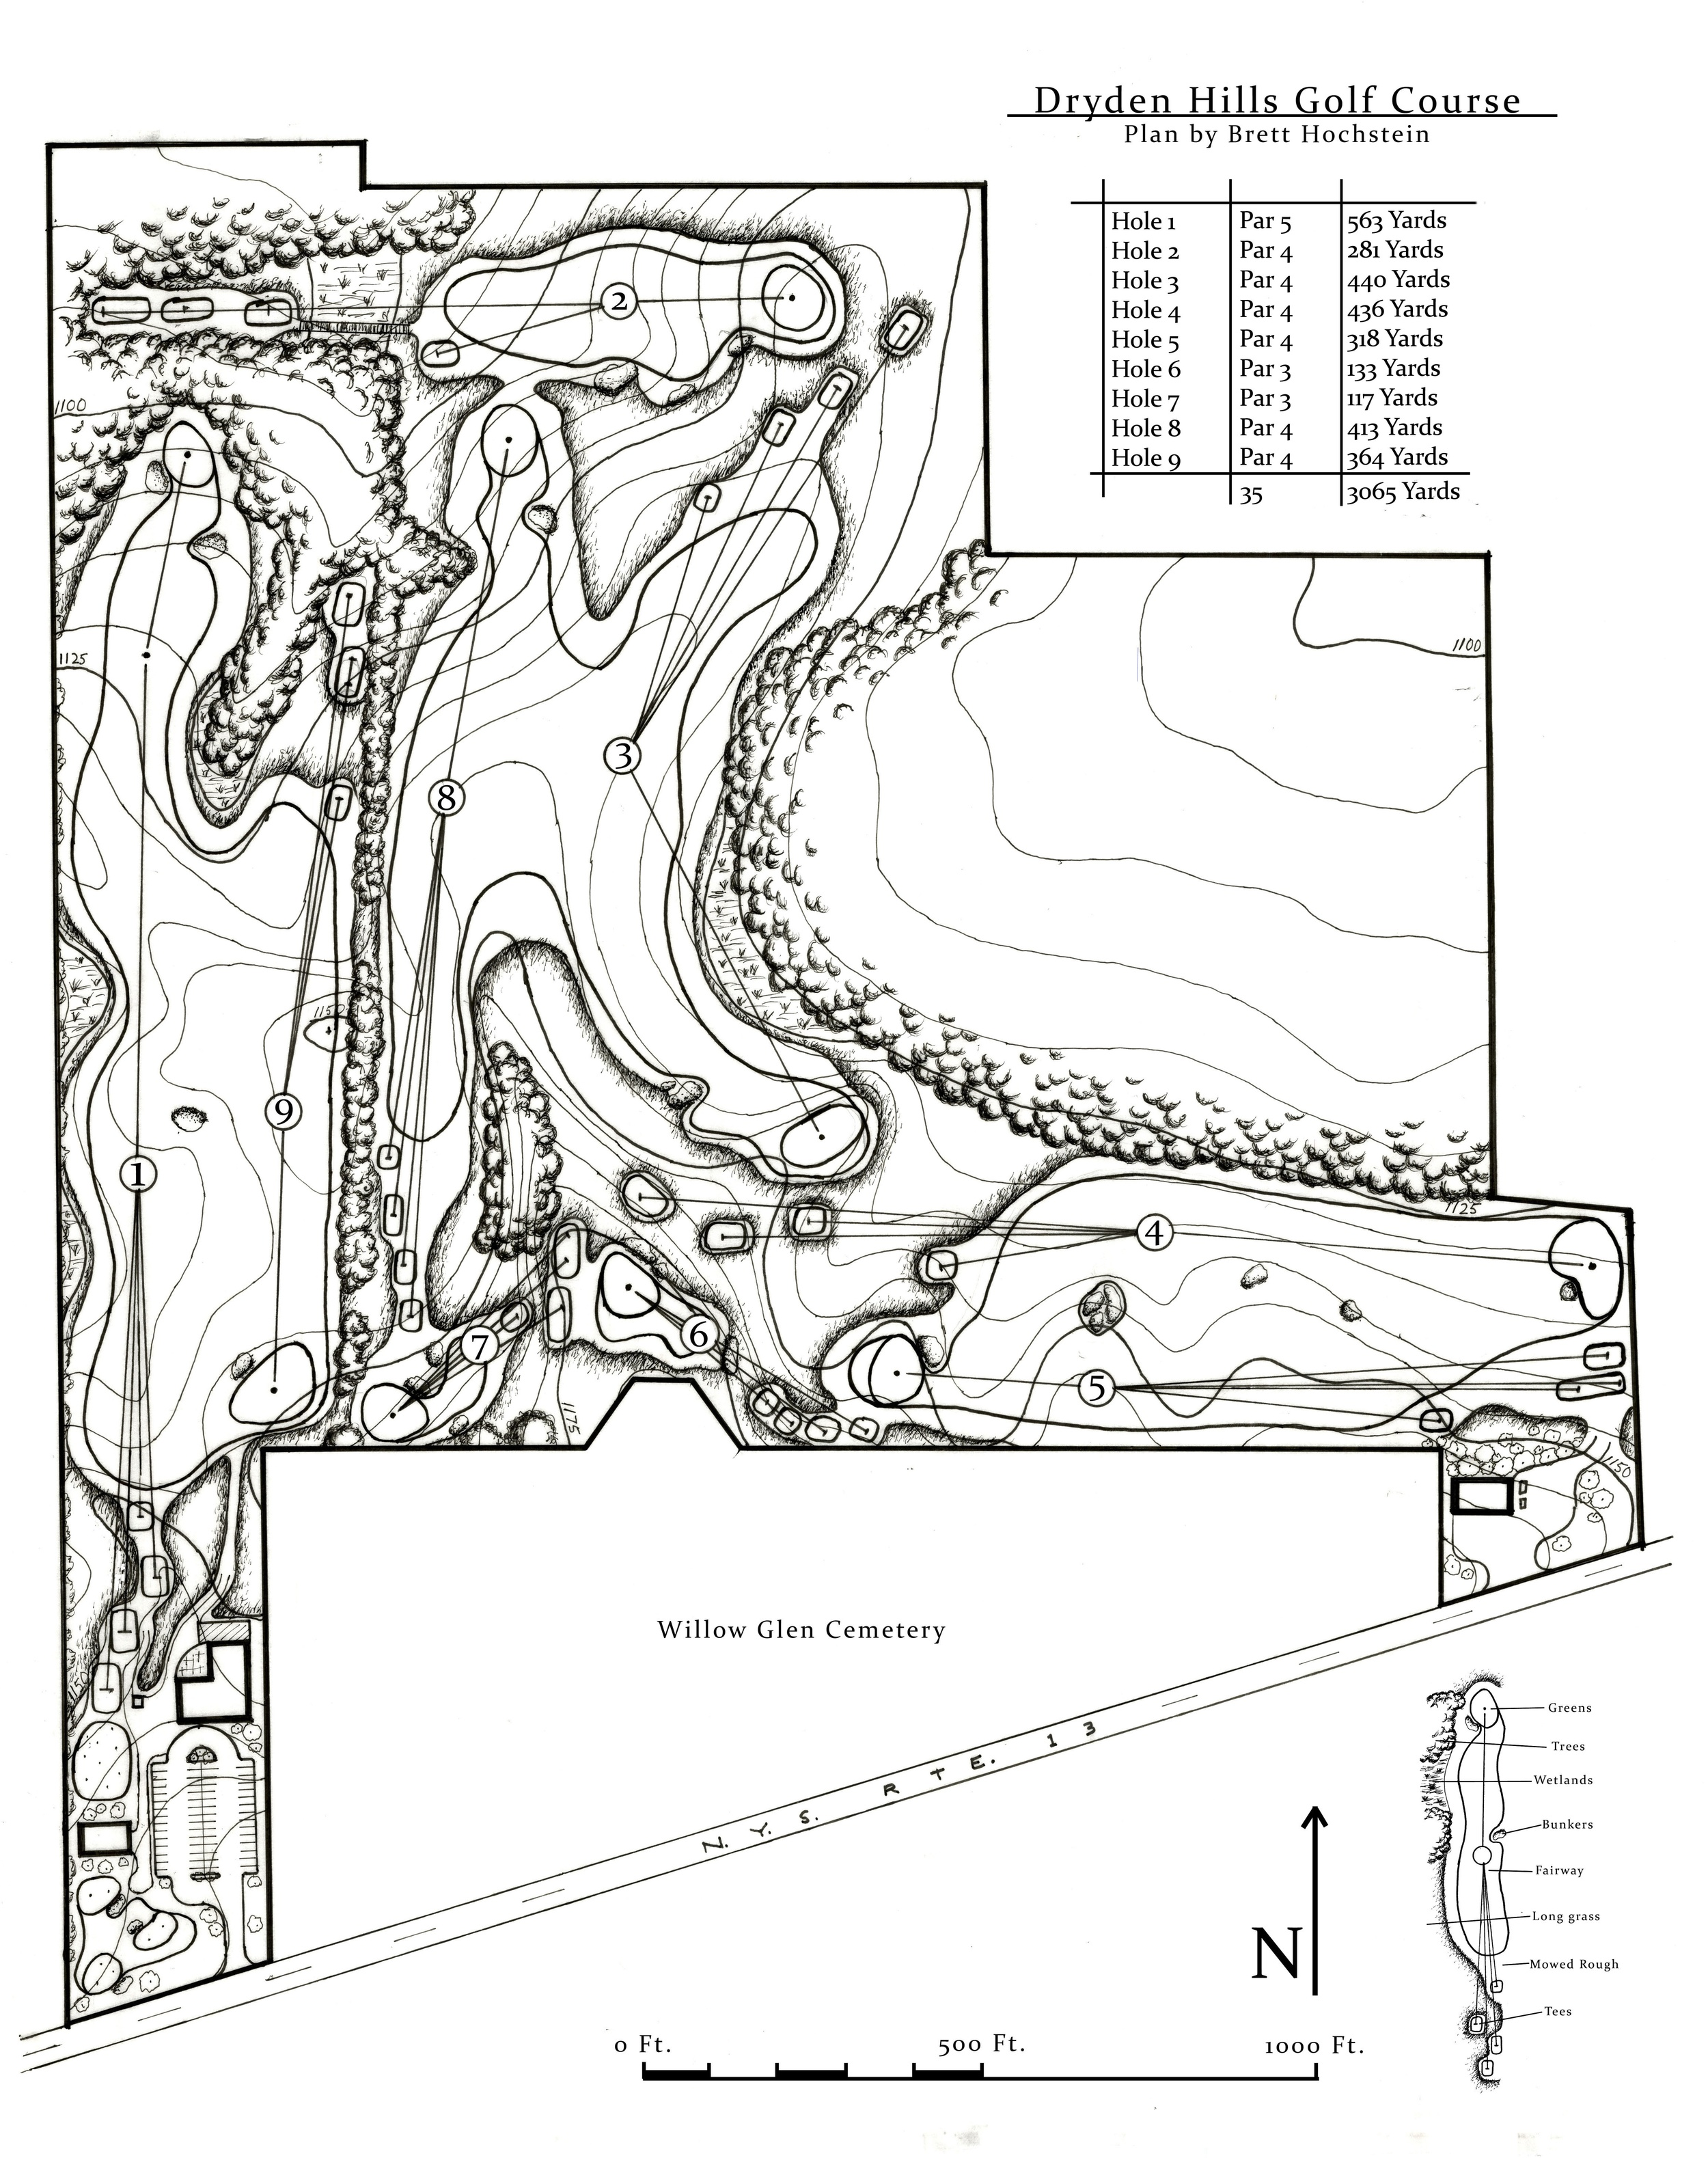 Plan drawing for a conceptual 9 hole course in Central New York